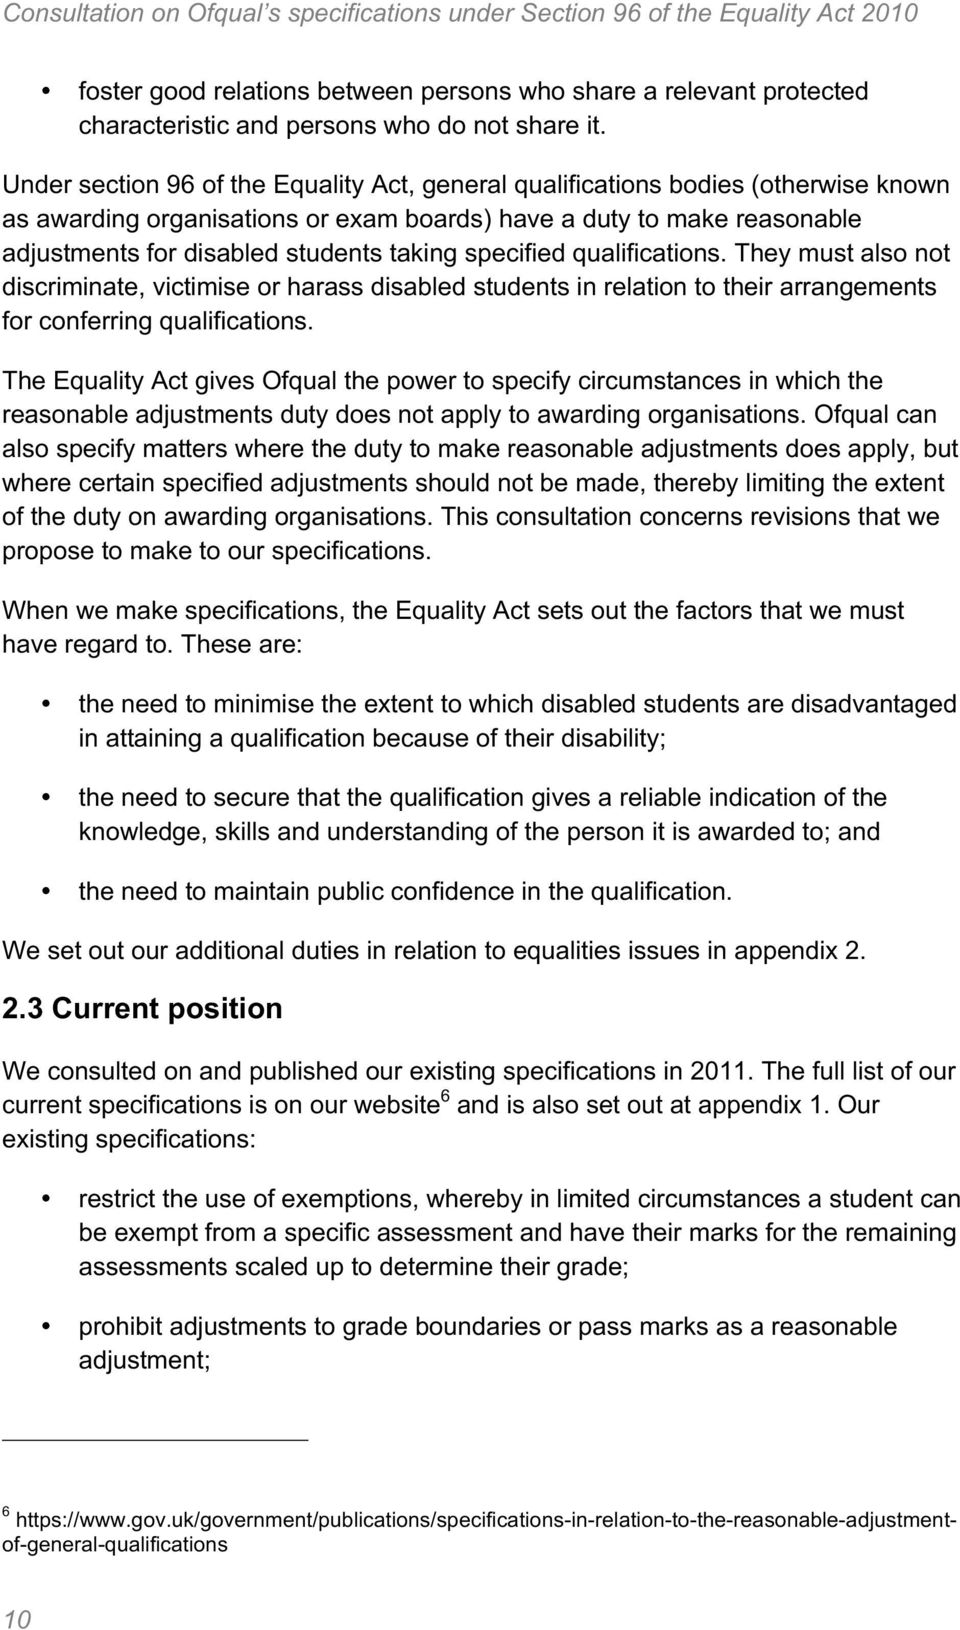 specified qualifications. They must also not discriminate, victimise or harass disabled students in relation to their arrangements for conferring qualifications.